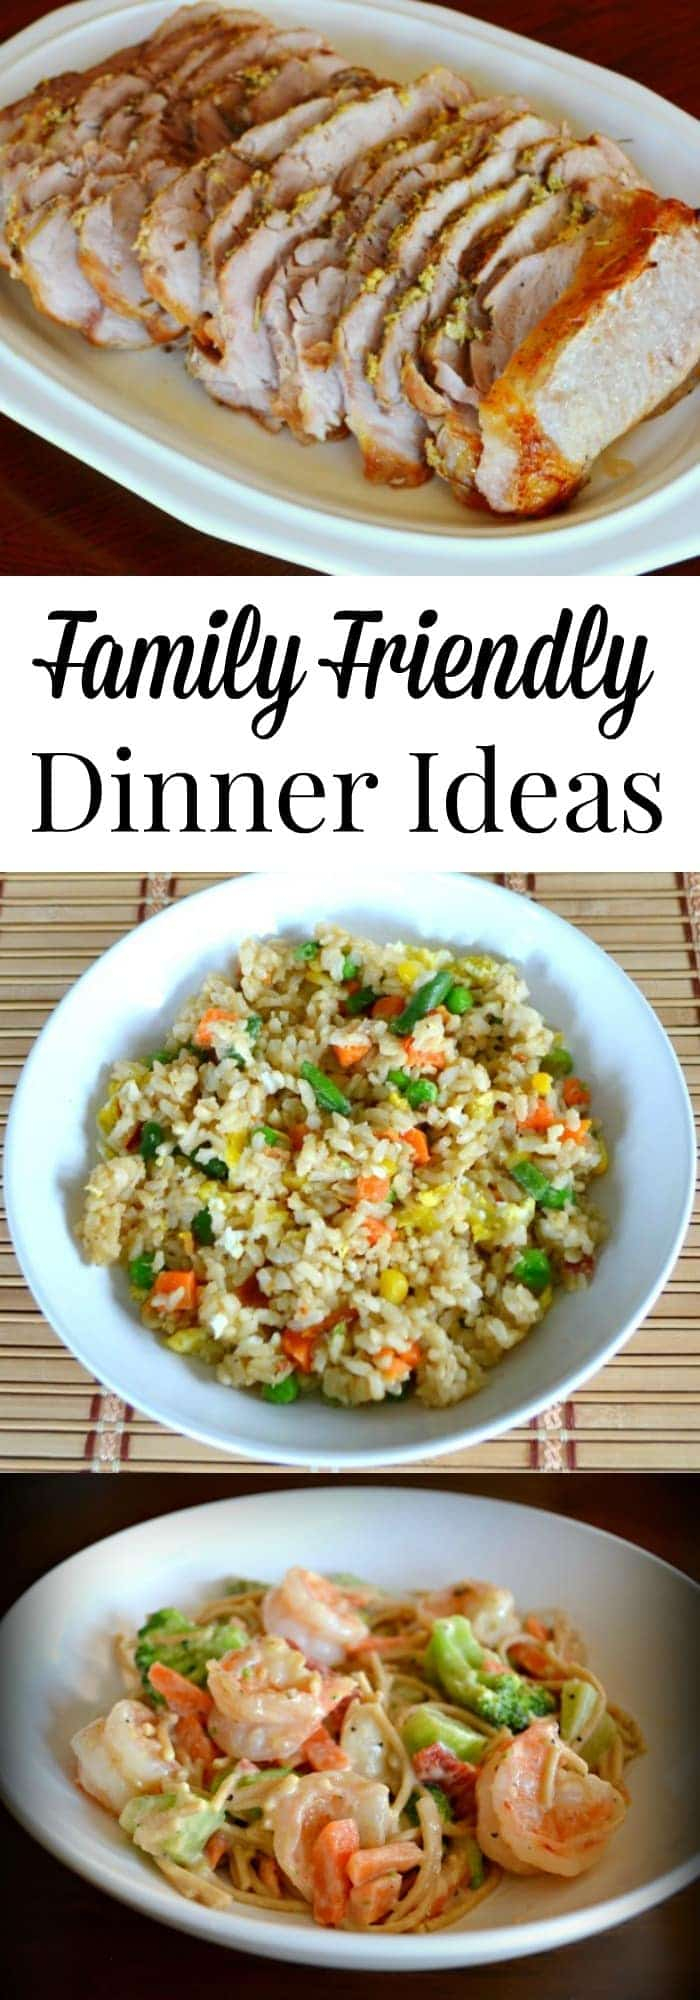 One of the biggest challenges for busy moms is getting a healthy meal on the table every night. Here's acollectionof family friendly dinner ideas to help. #dinnerideas #family #busymoms #healthymeal via @wondermomwannab